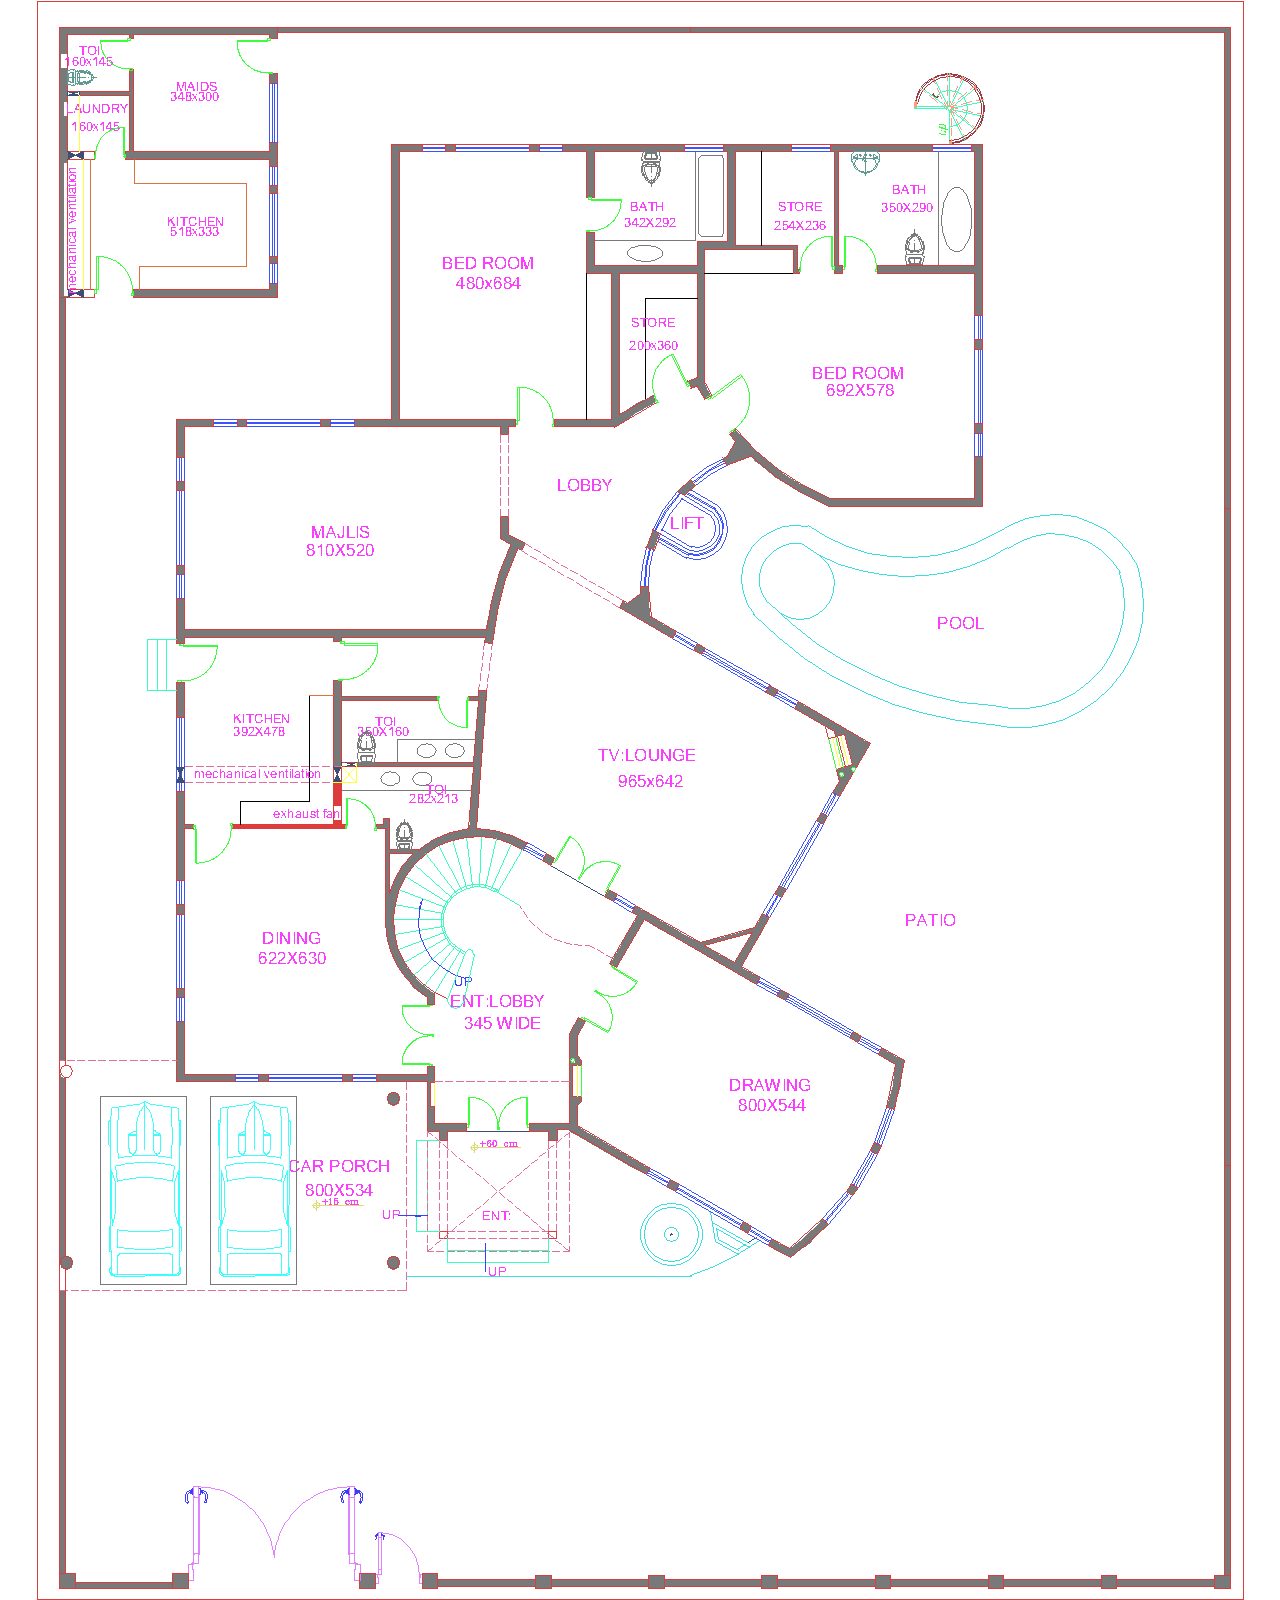 10 20Marla 20Modern 20Contemporary 20Front 20Design besides Beautiful Shopping Mall Store European furthermore 500 Square Yards House Plan 3d Front as well Kerala Home Design Photos Google furthermore Online. on home designs and floor plans apps